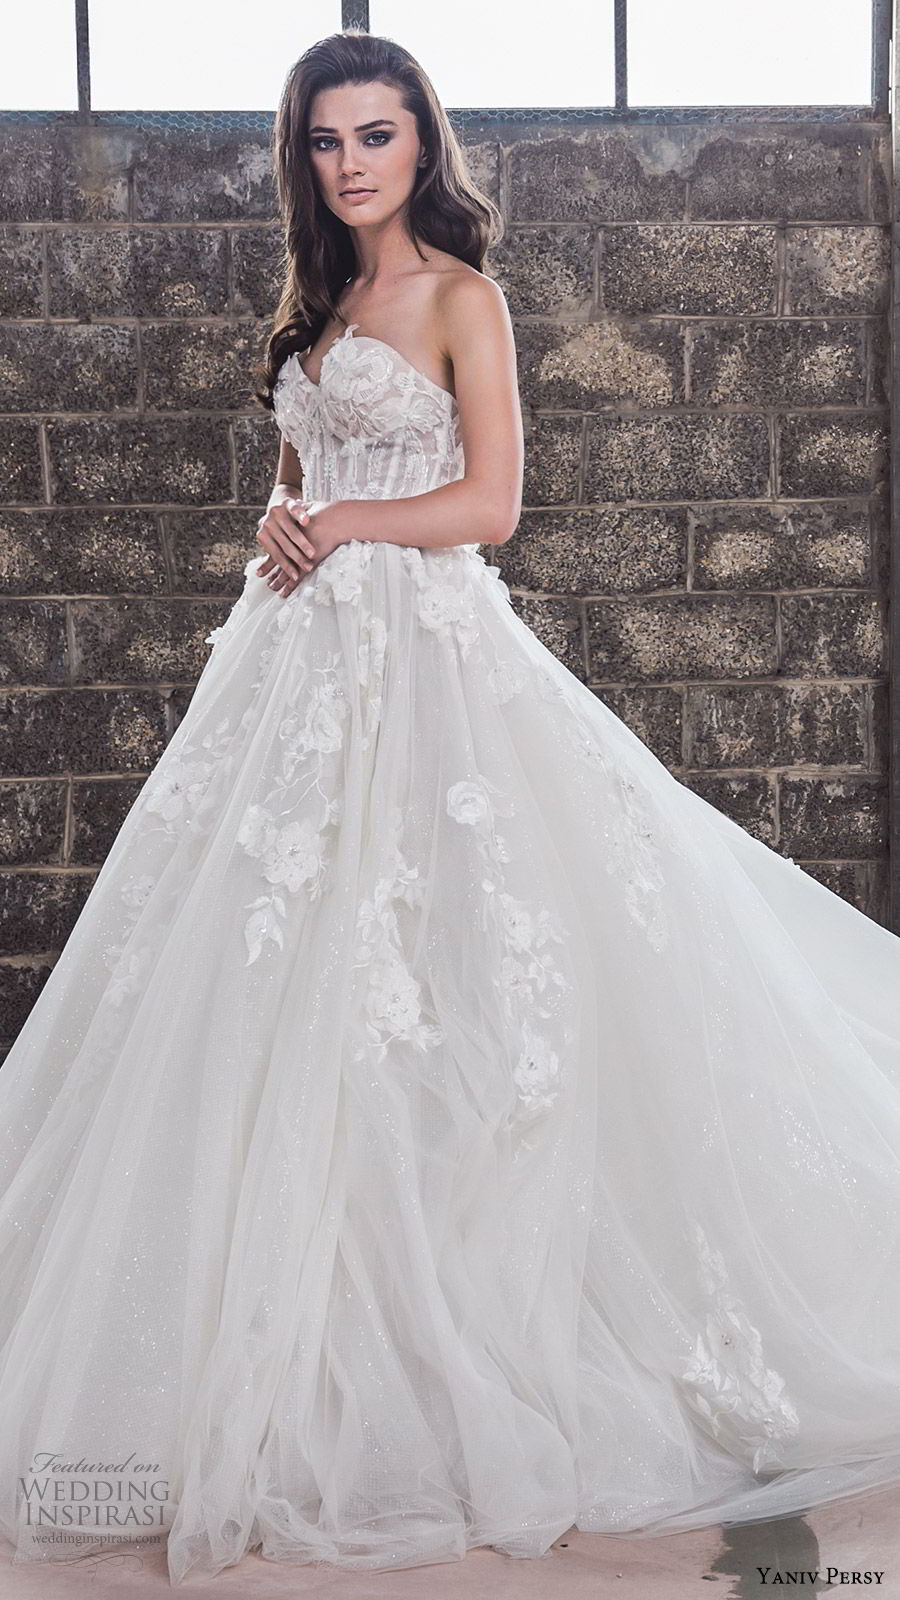 yaniv persy spring 2020 bridal couture strapless sweetheart neckline embellished bodice a line ball gown wedding dress (4) chapel train elegant romantic mv